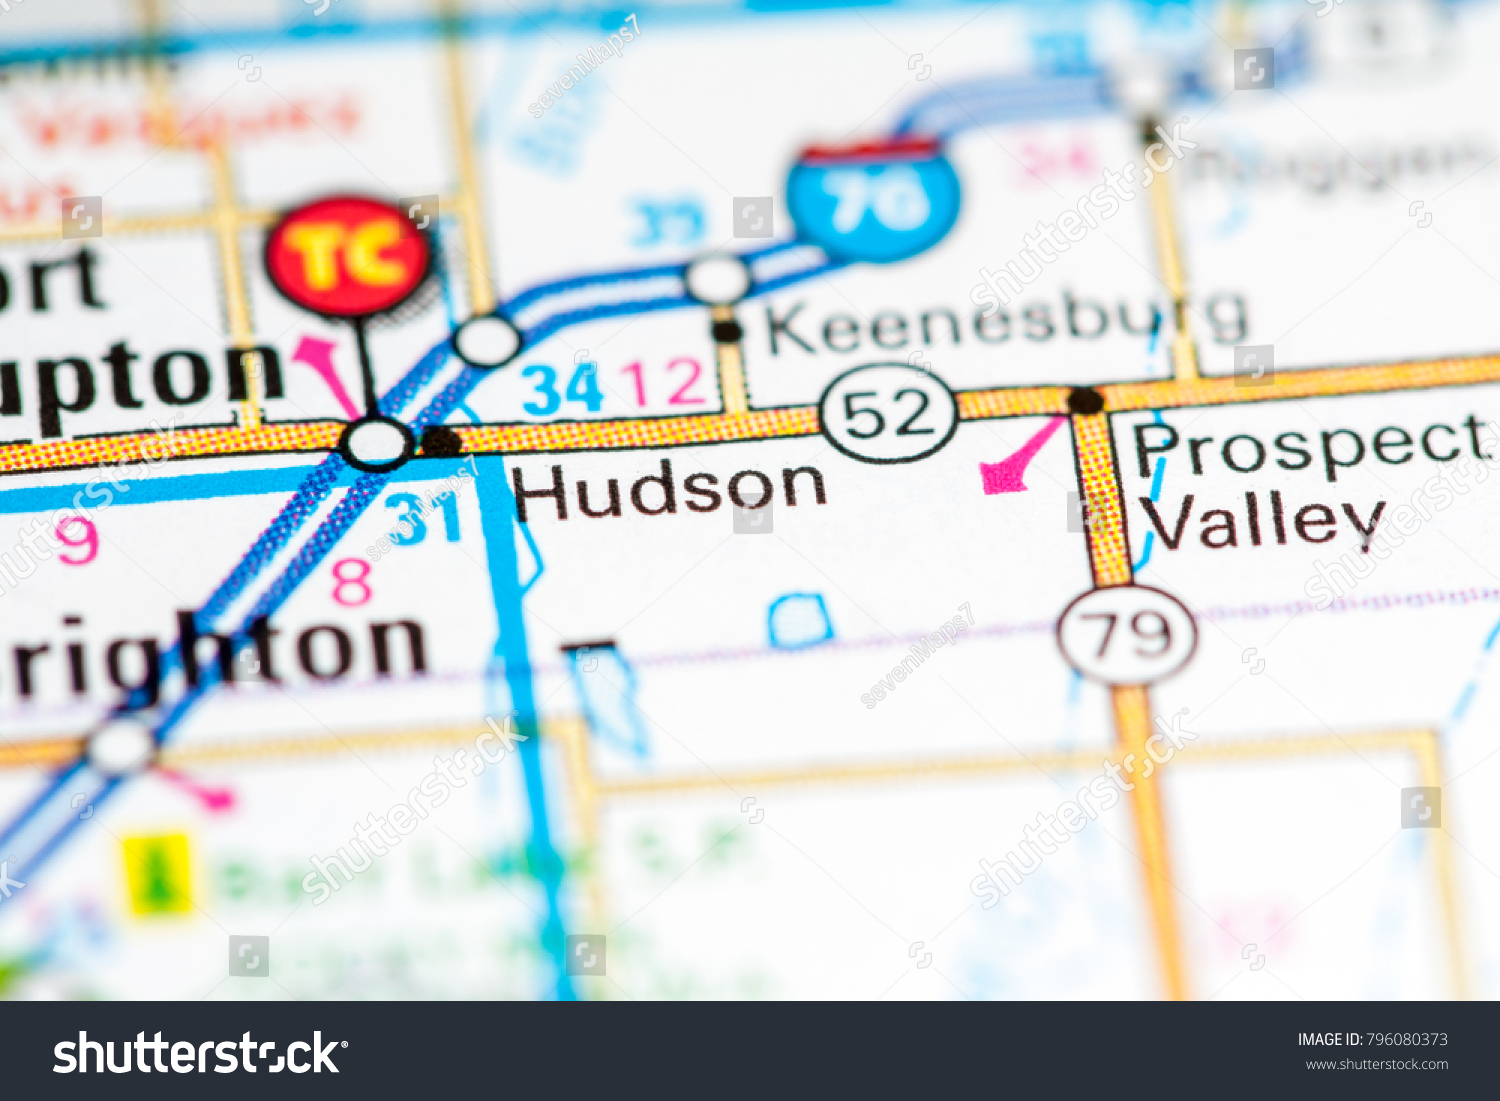 Hudson Colorado Usa On Map Stock Photo Edit Now 796080373